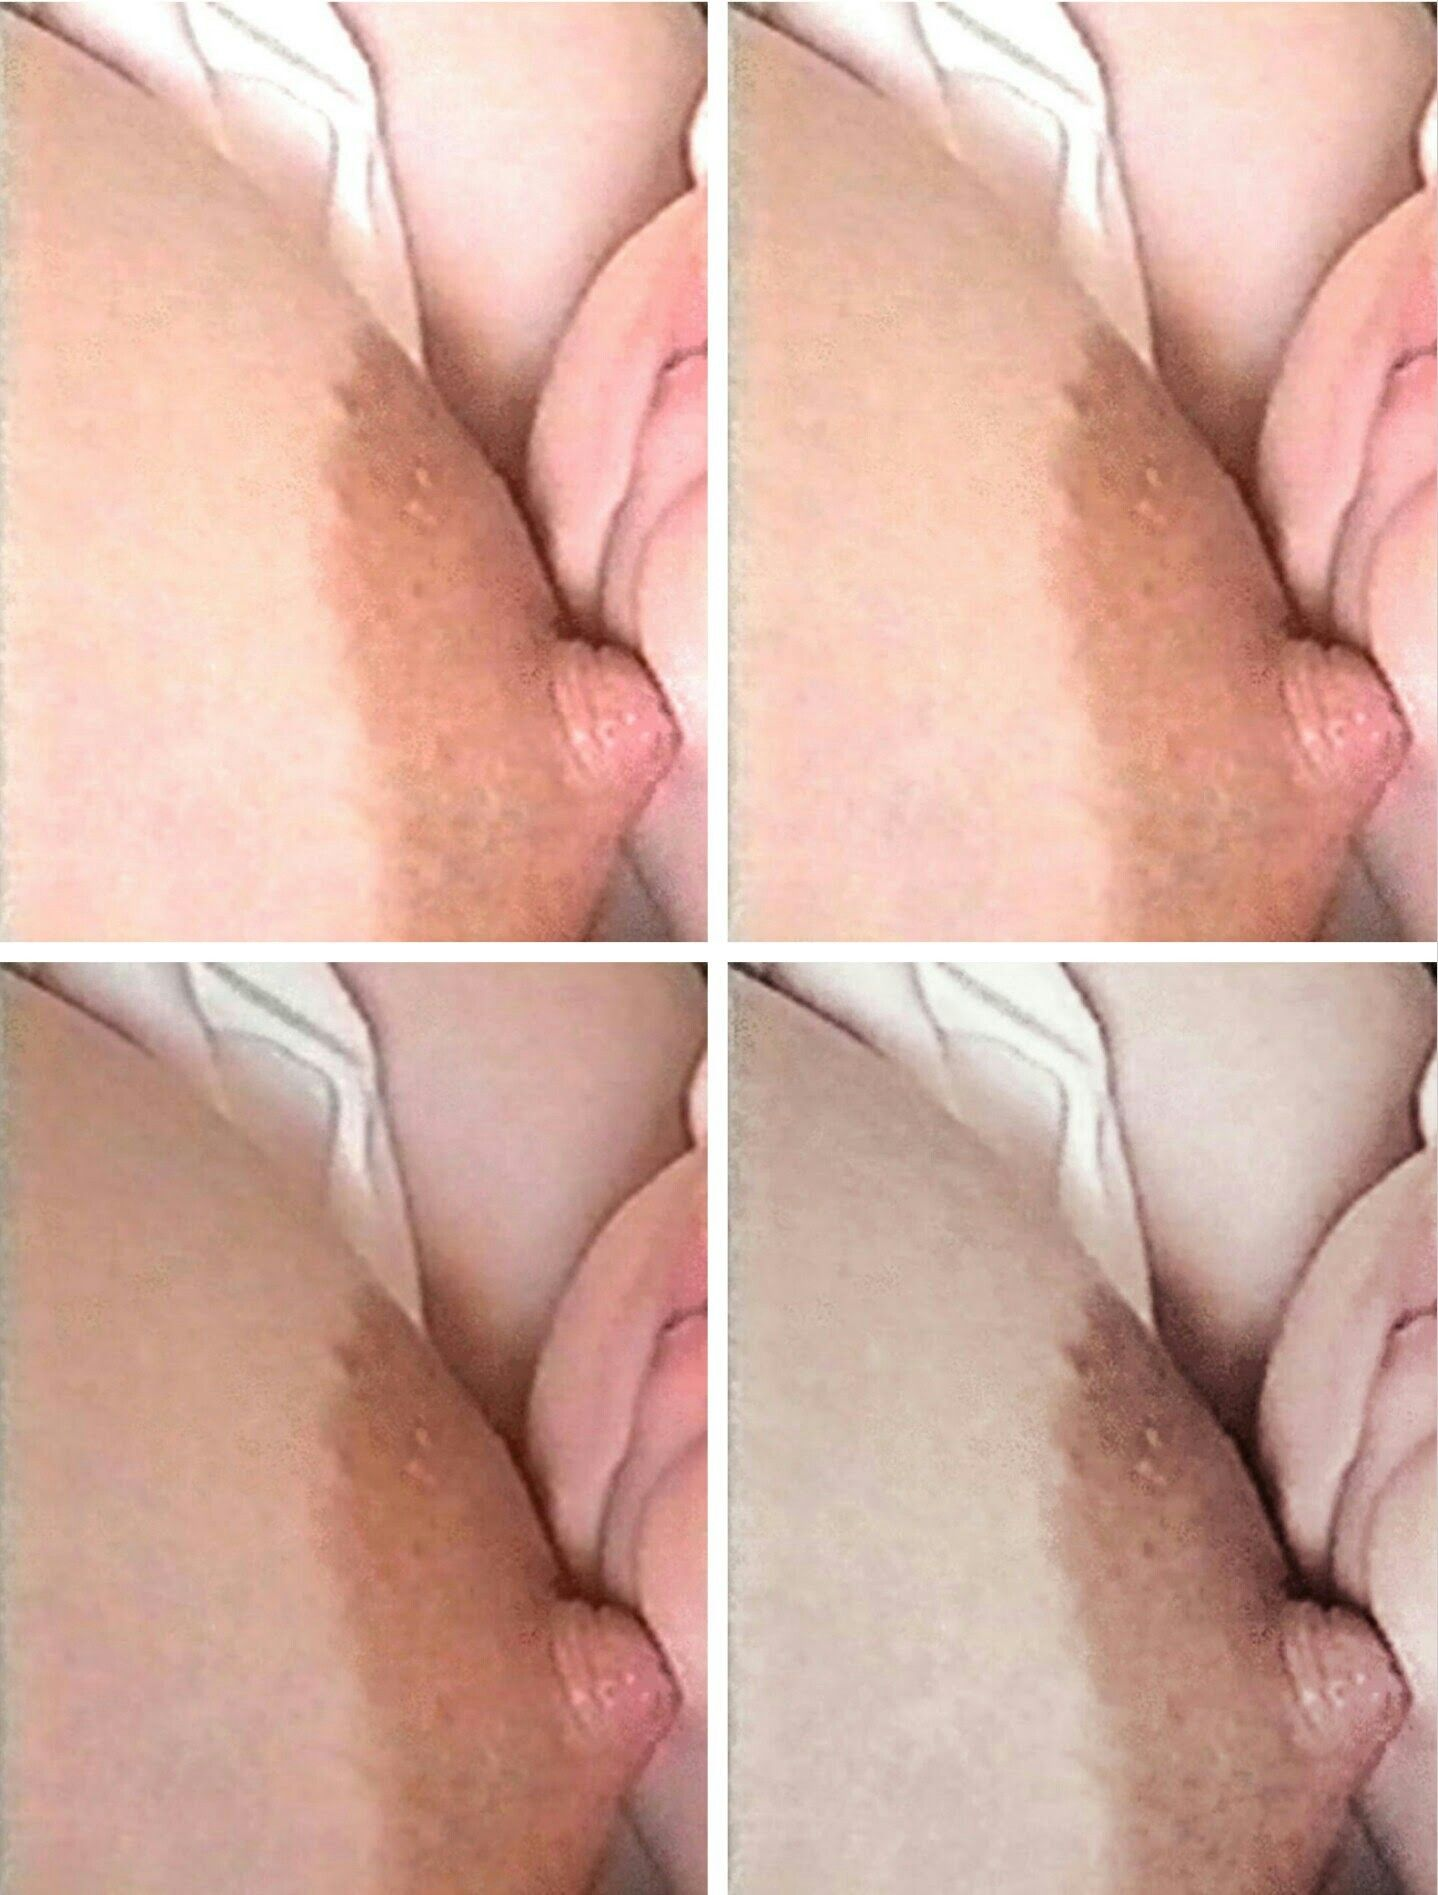 Gay ass hole pictures